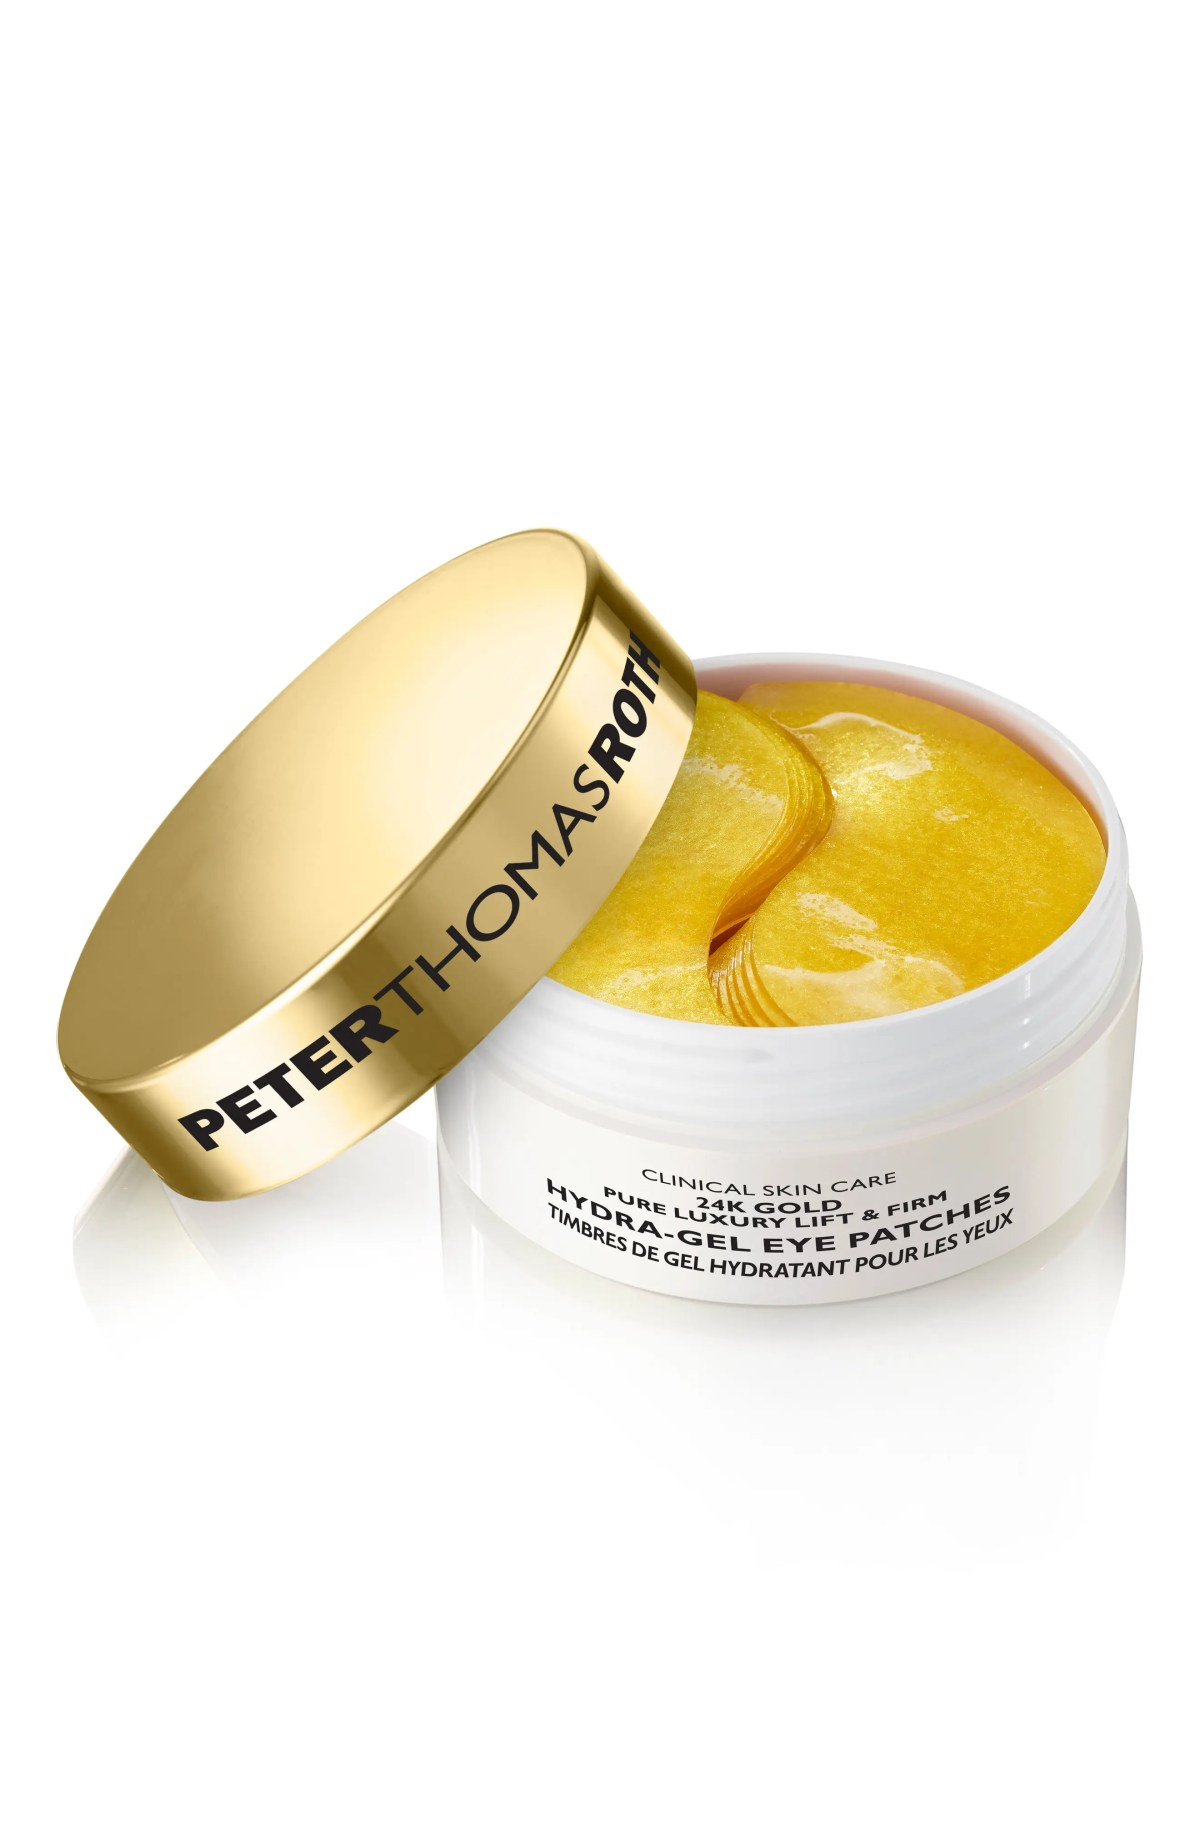 PETER THOMAS ROTH 24K Gold Lift & Firm Hydra-Gel Eye Patches, Main, color, NO COLOR